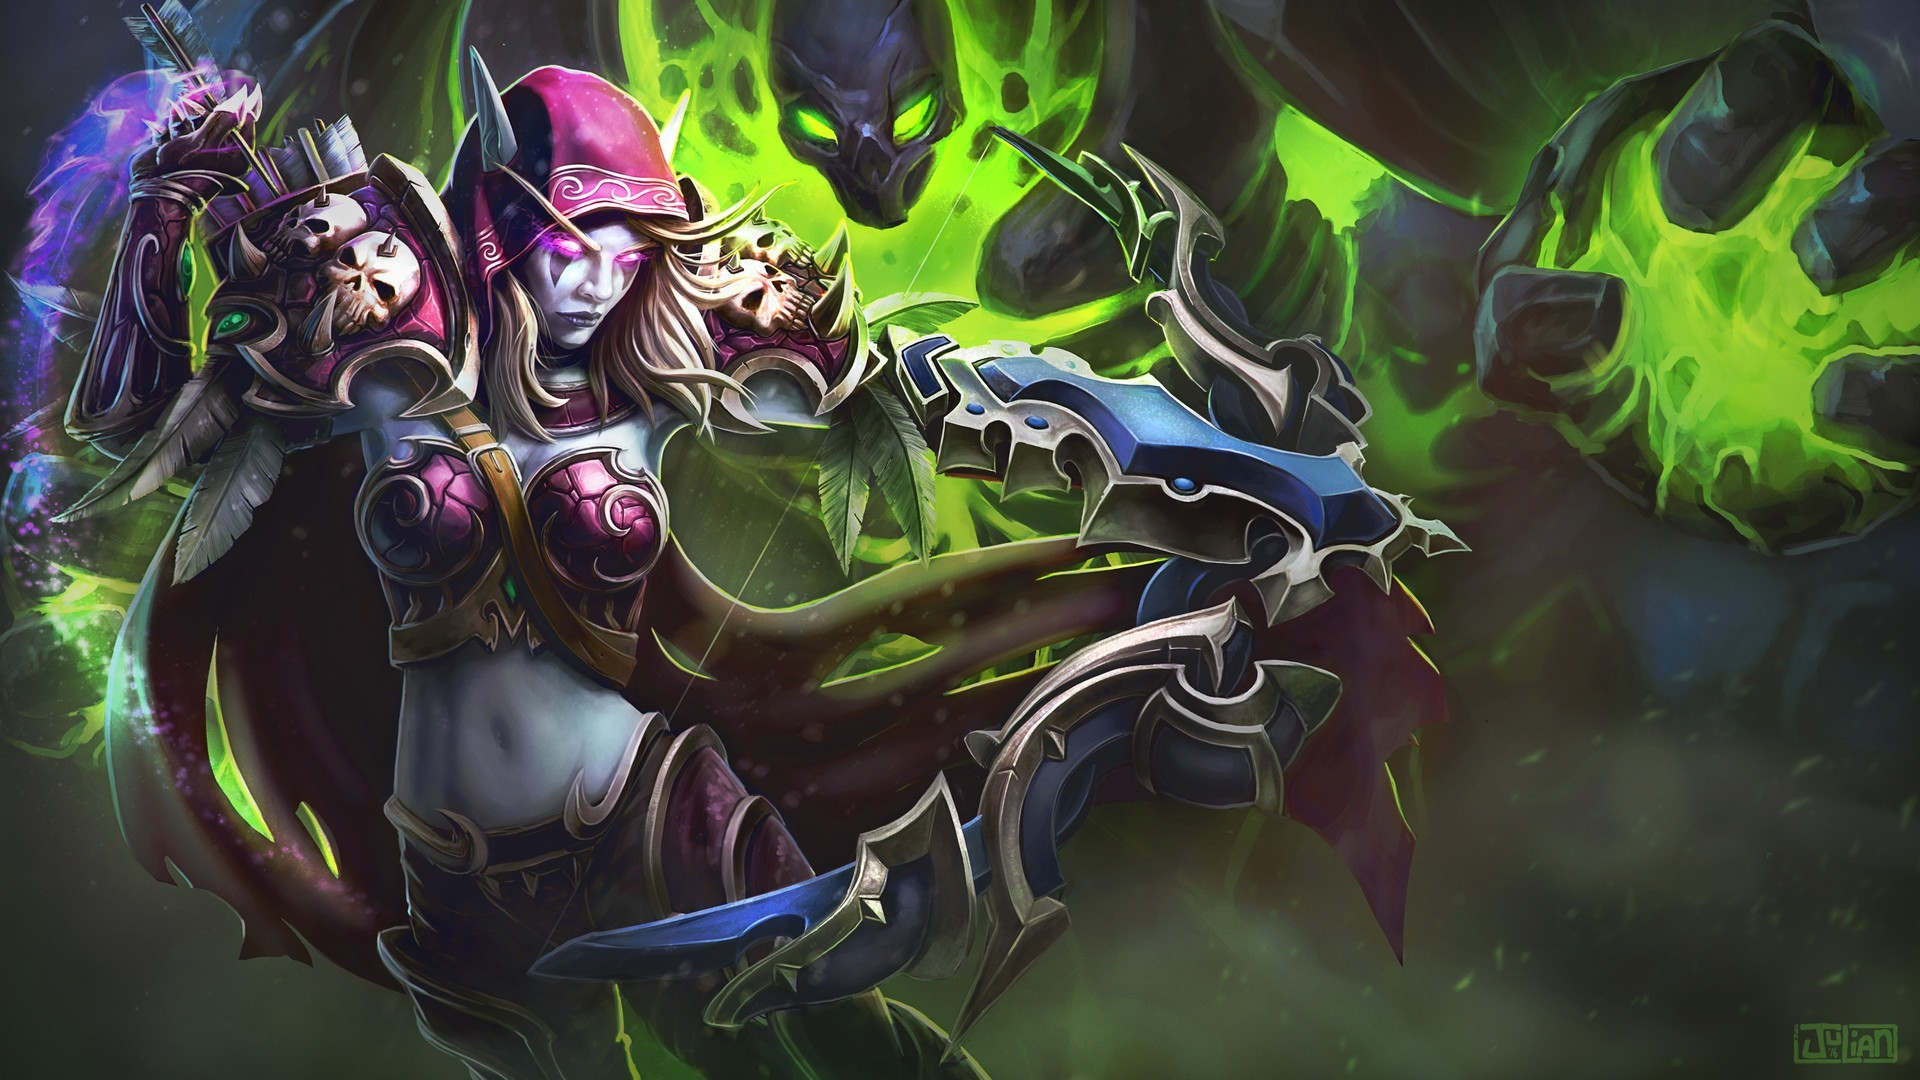 Sylvanas Windrunner, World of Warcraft, Video games, Bow, Arrows, Fantasy girl  Wallpapers HD / Desktop and Mobile Backgrounds